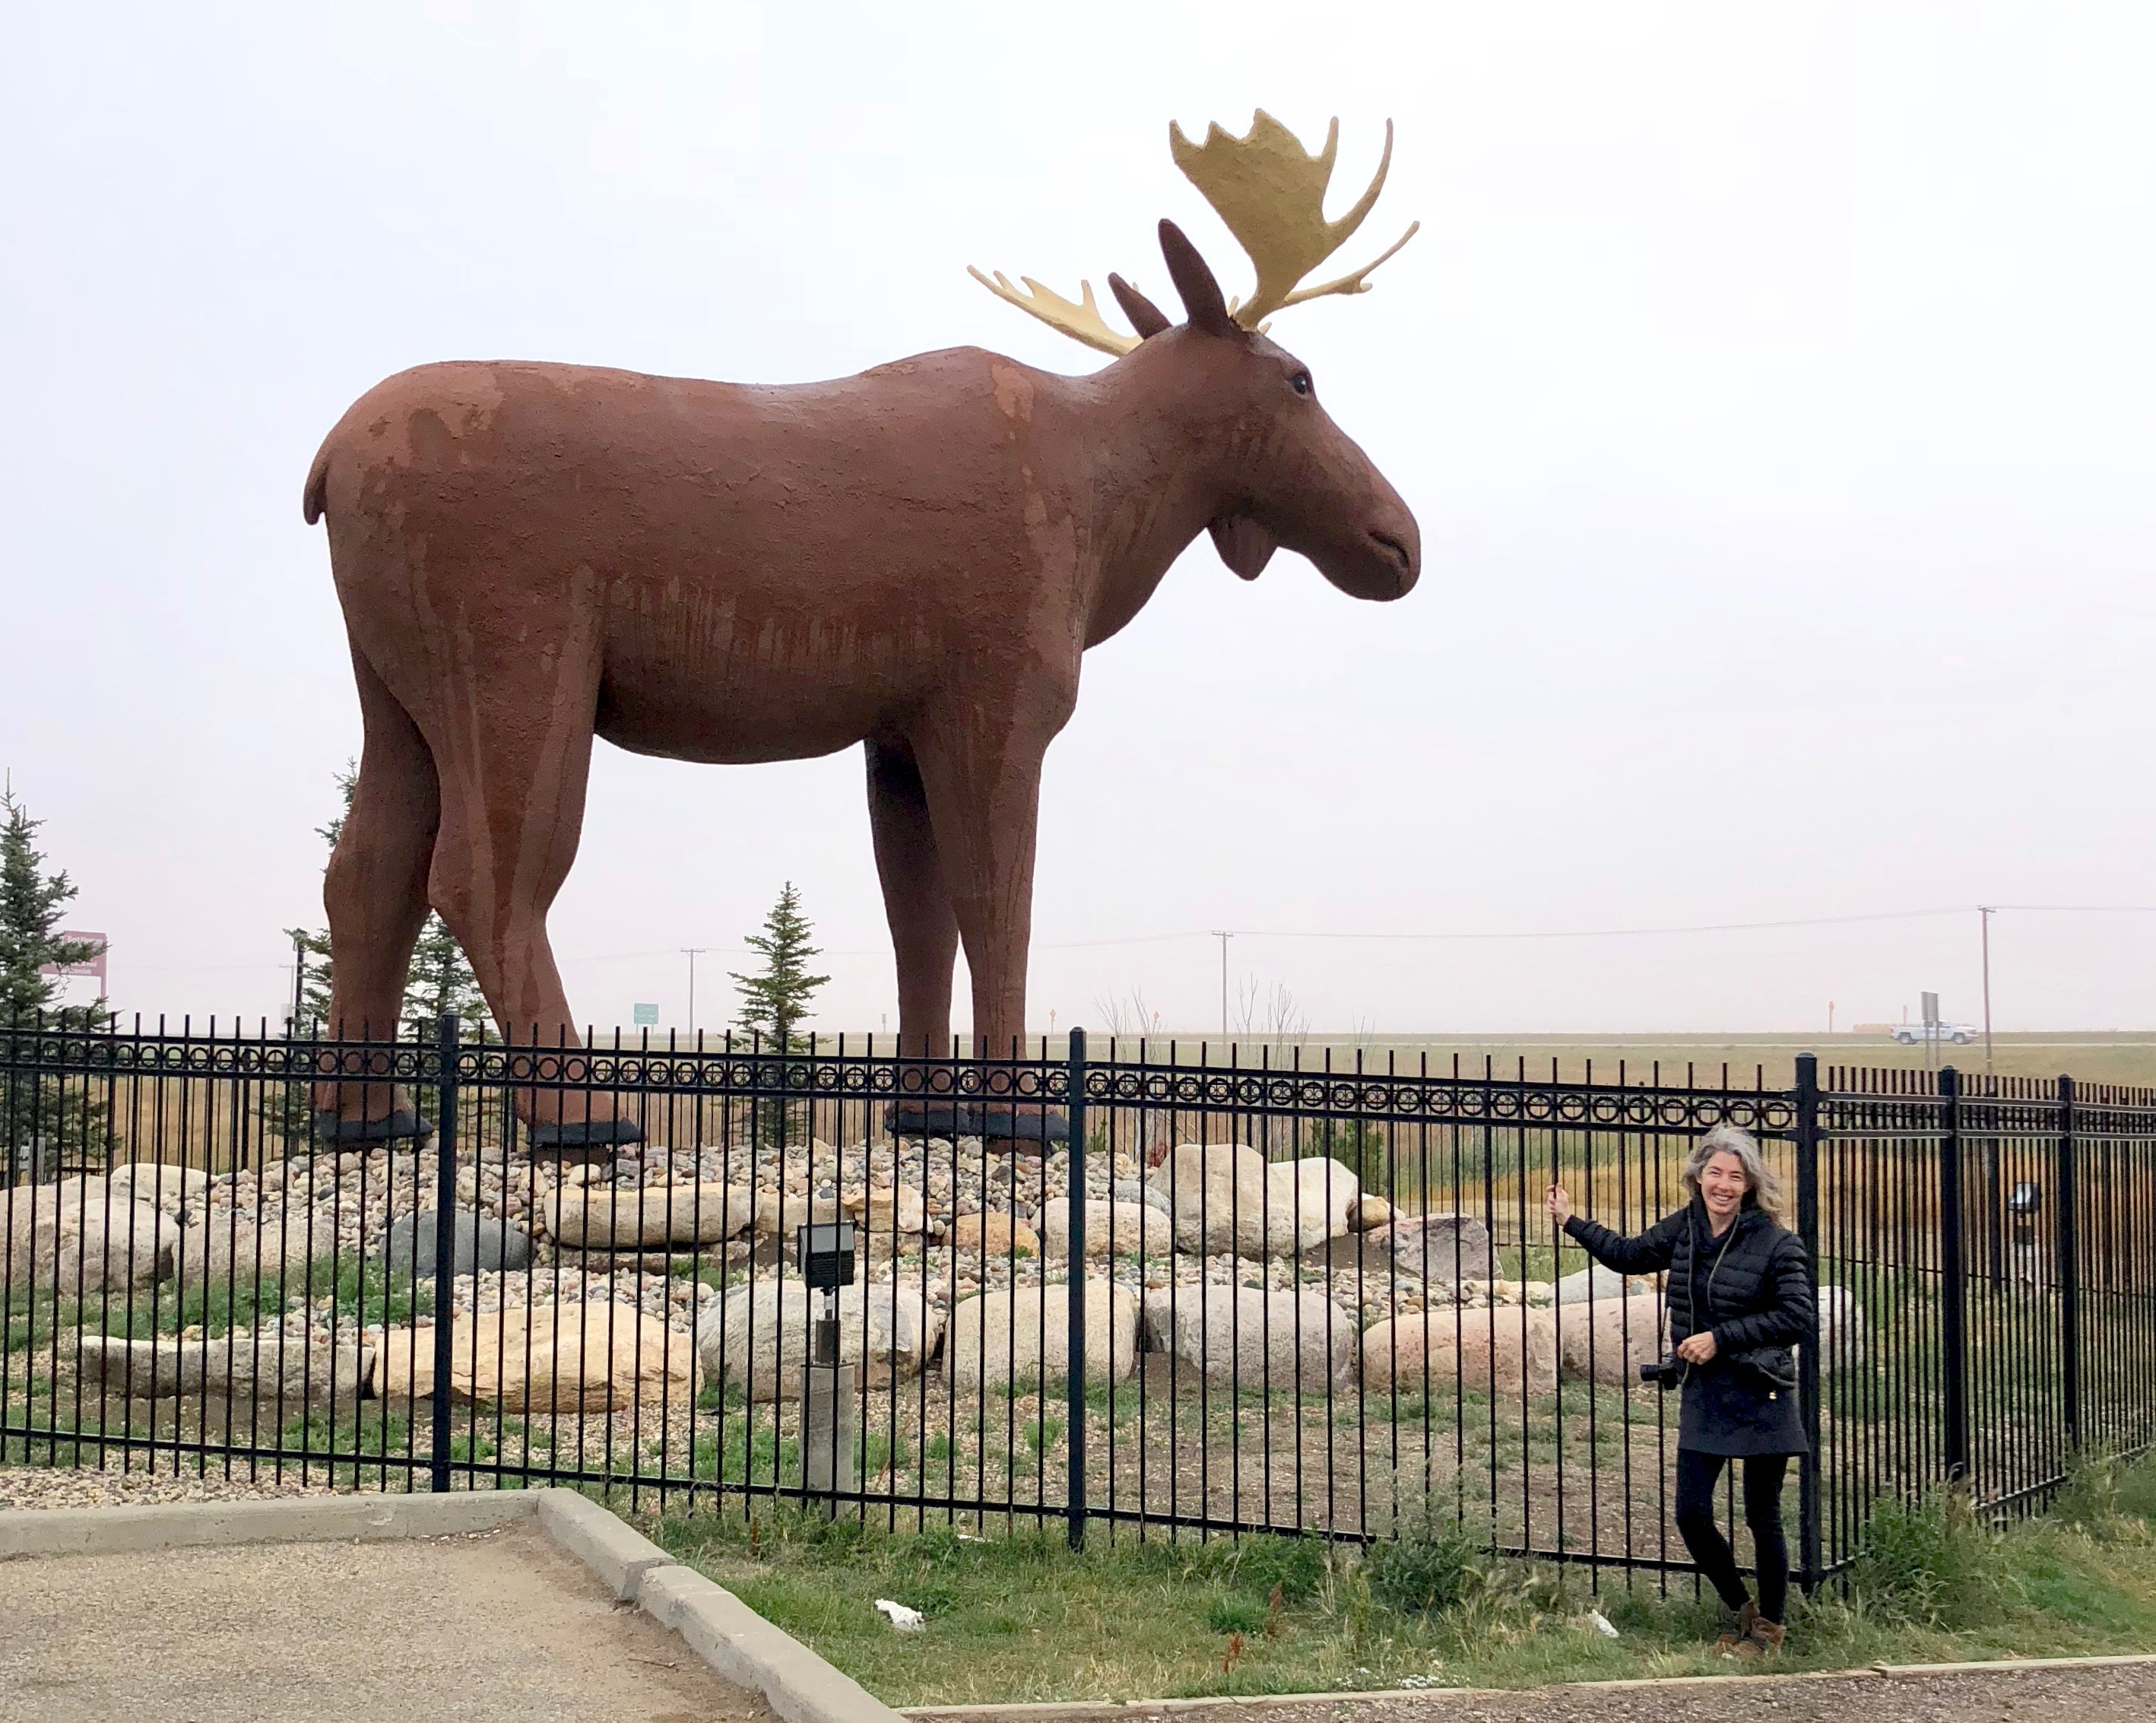 moose jaw, lynn friedman, road trip, moose jaw, statue, saskatchewan, canada,